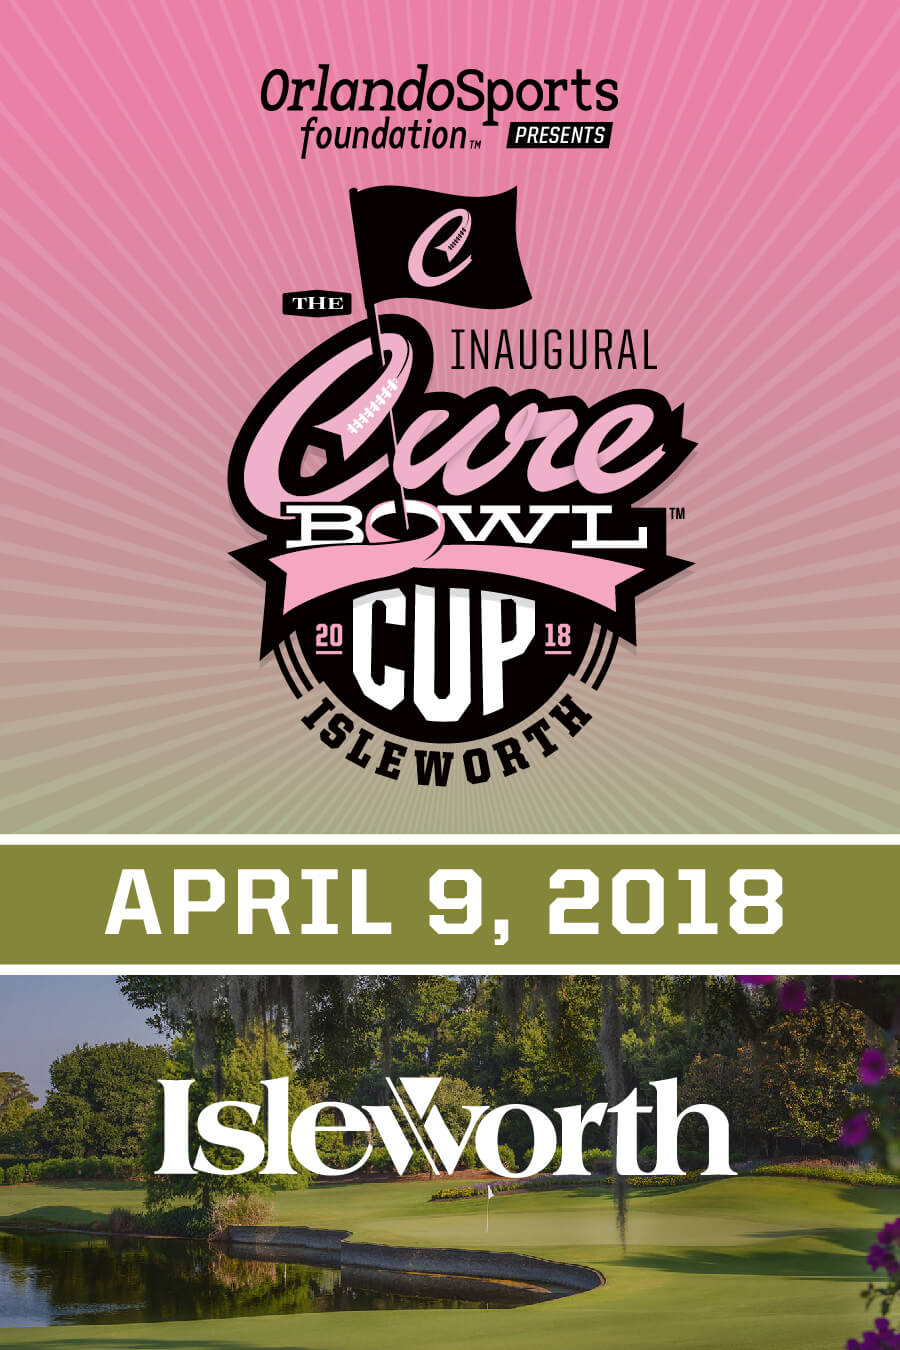 Cure Bowl Cup